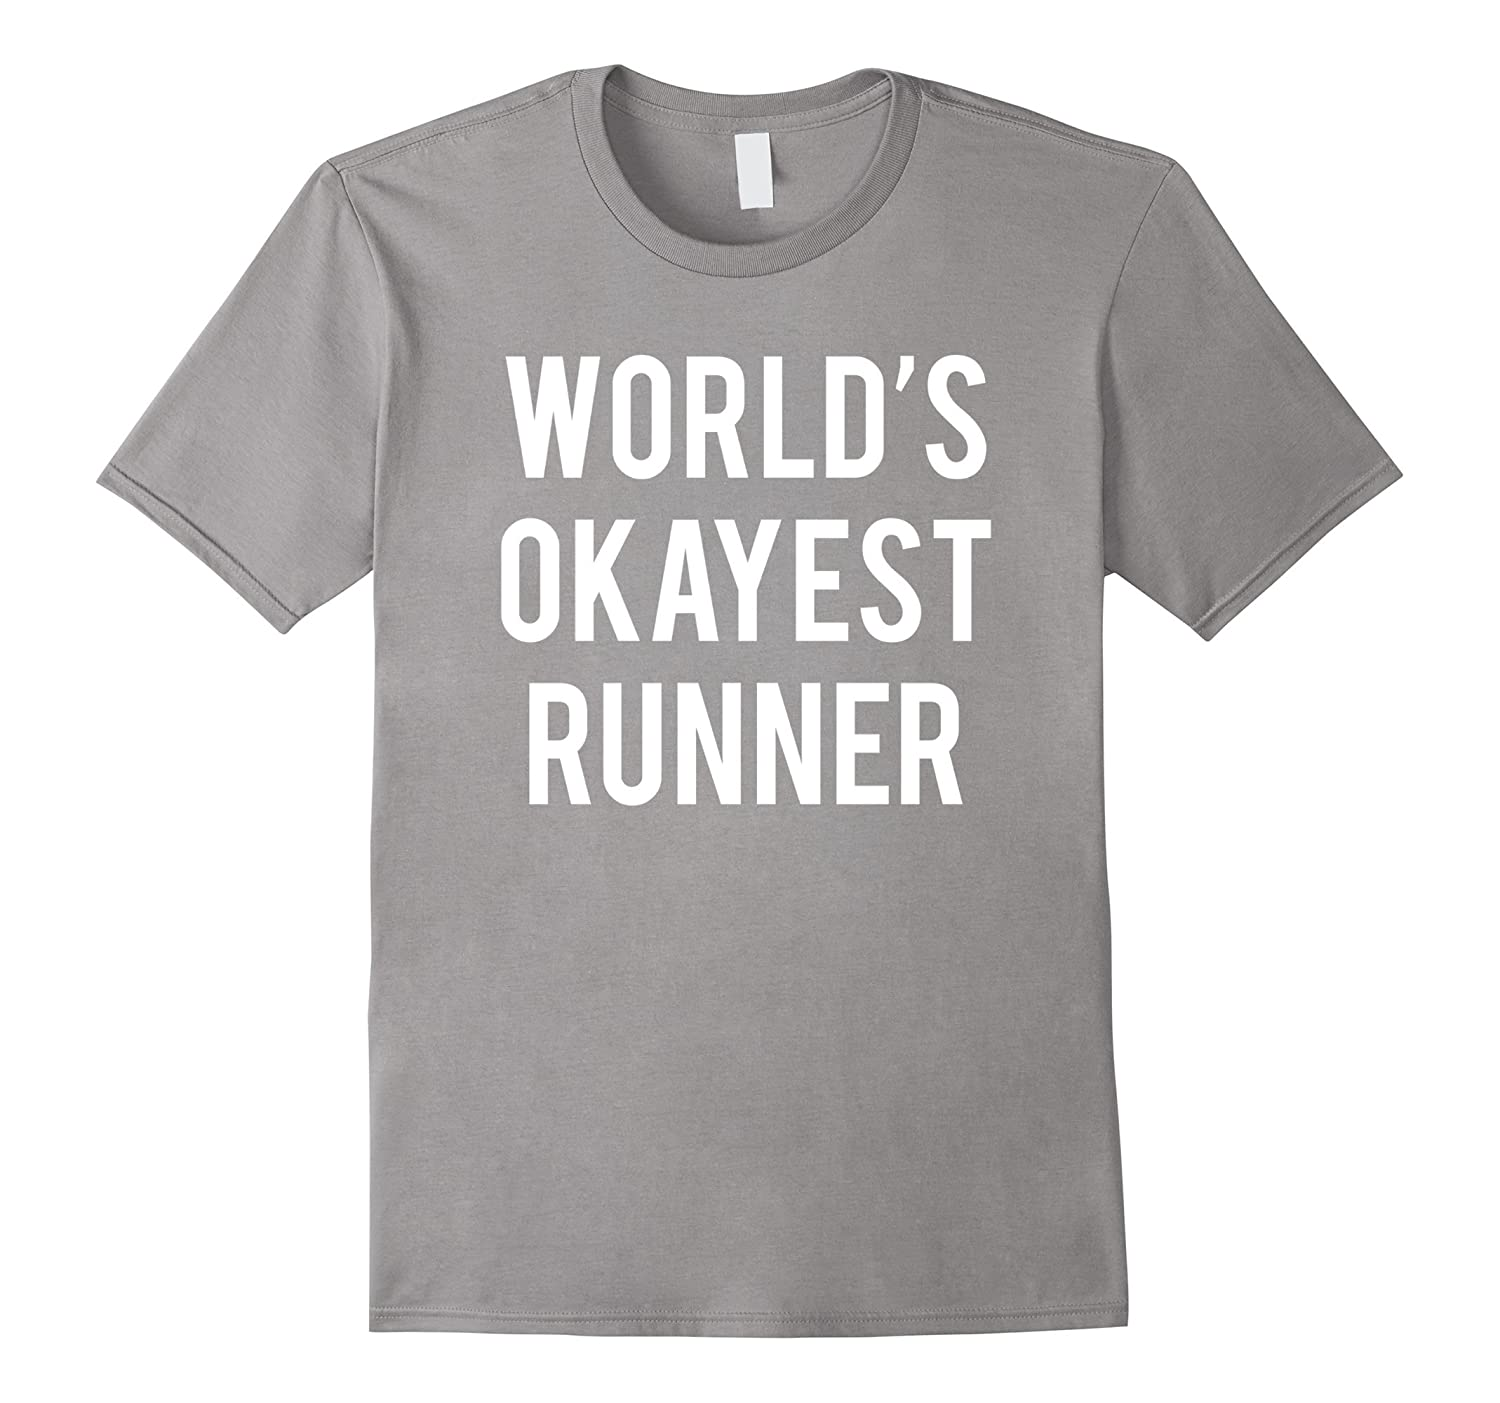 World's Okayest Runner T-Shirt Funny Running Shirt-TH